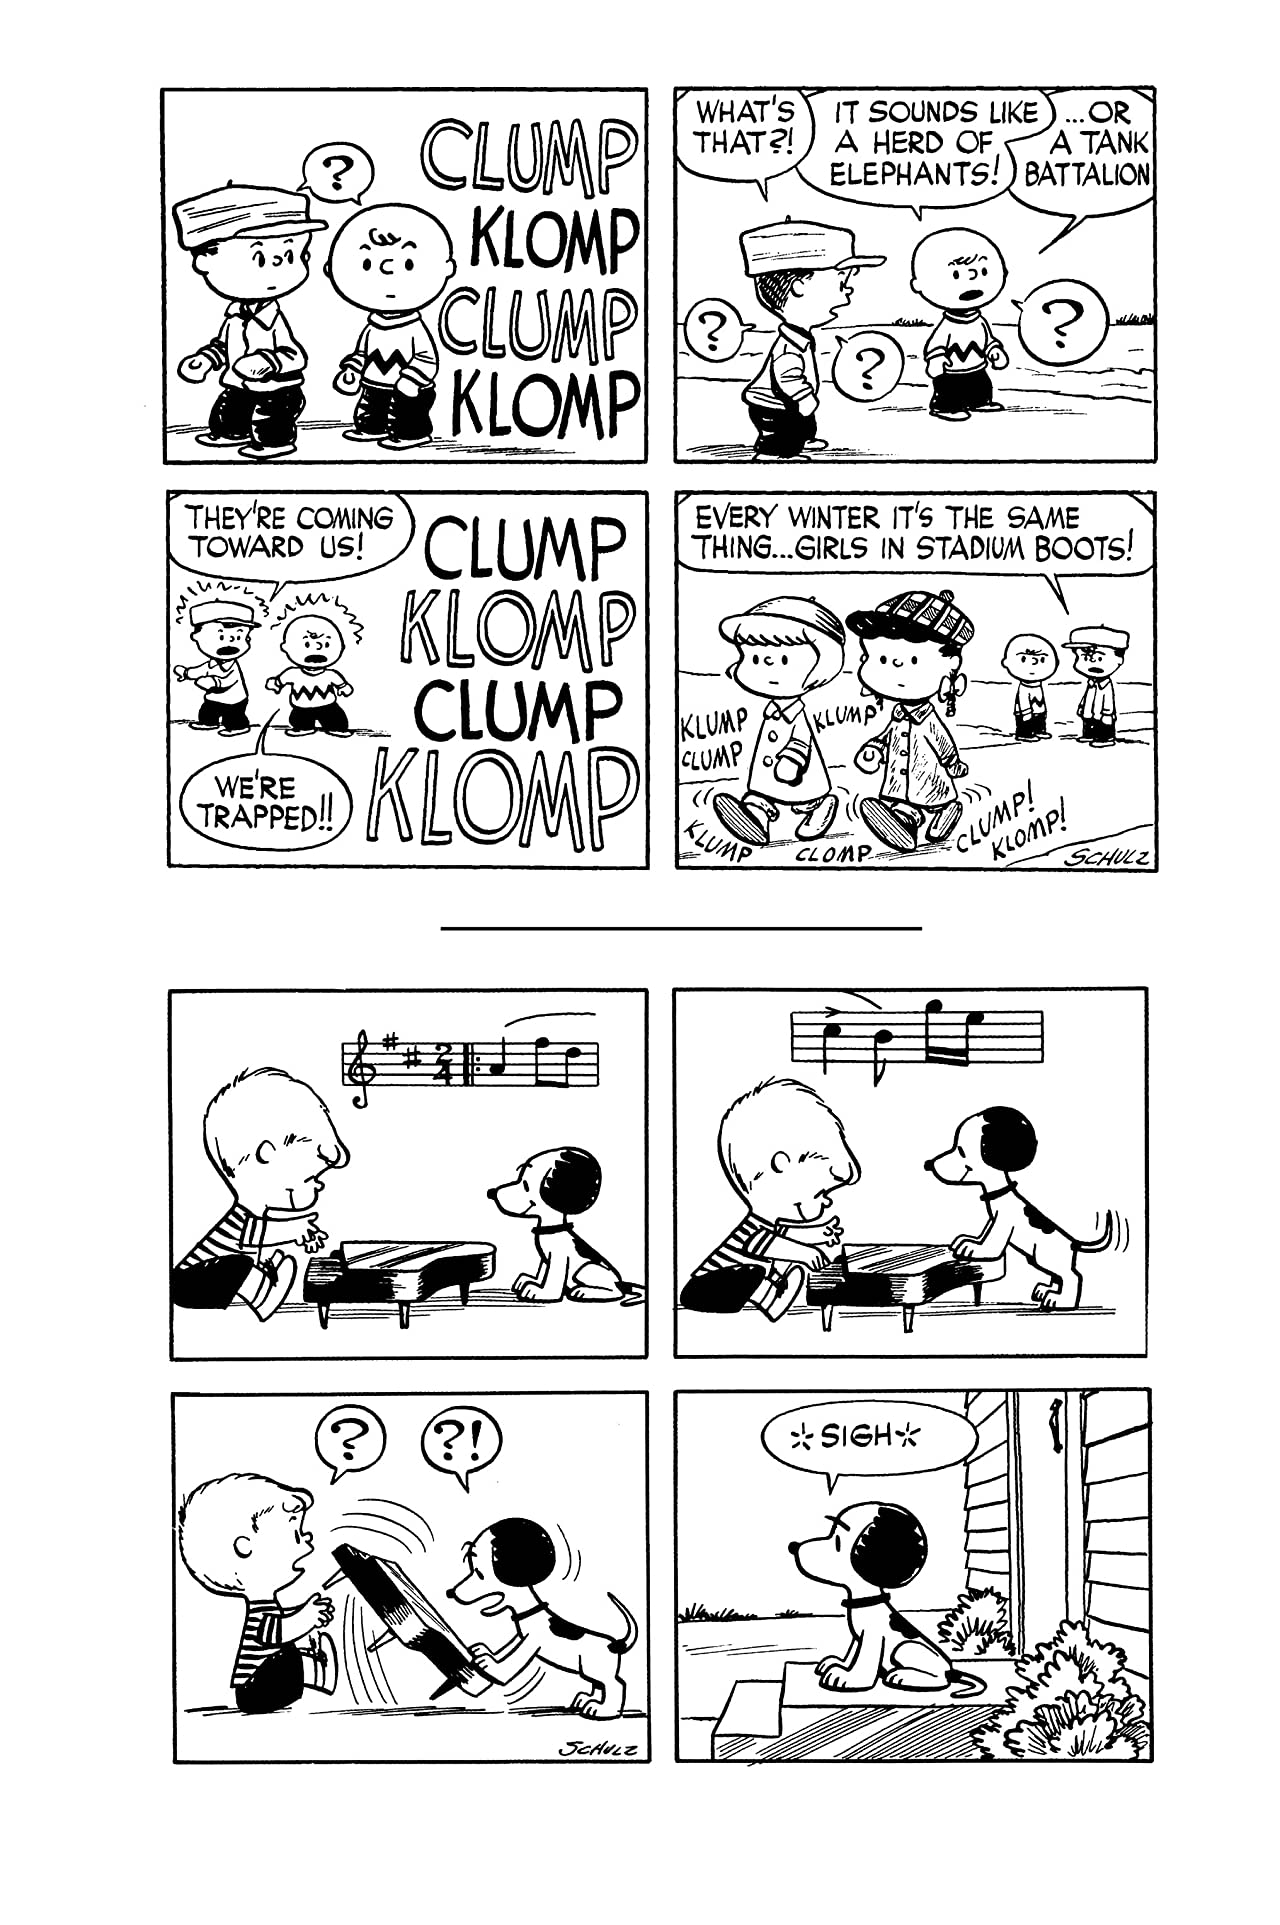 Peanuts Vol. 2: More Peanuts